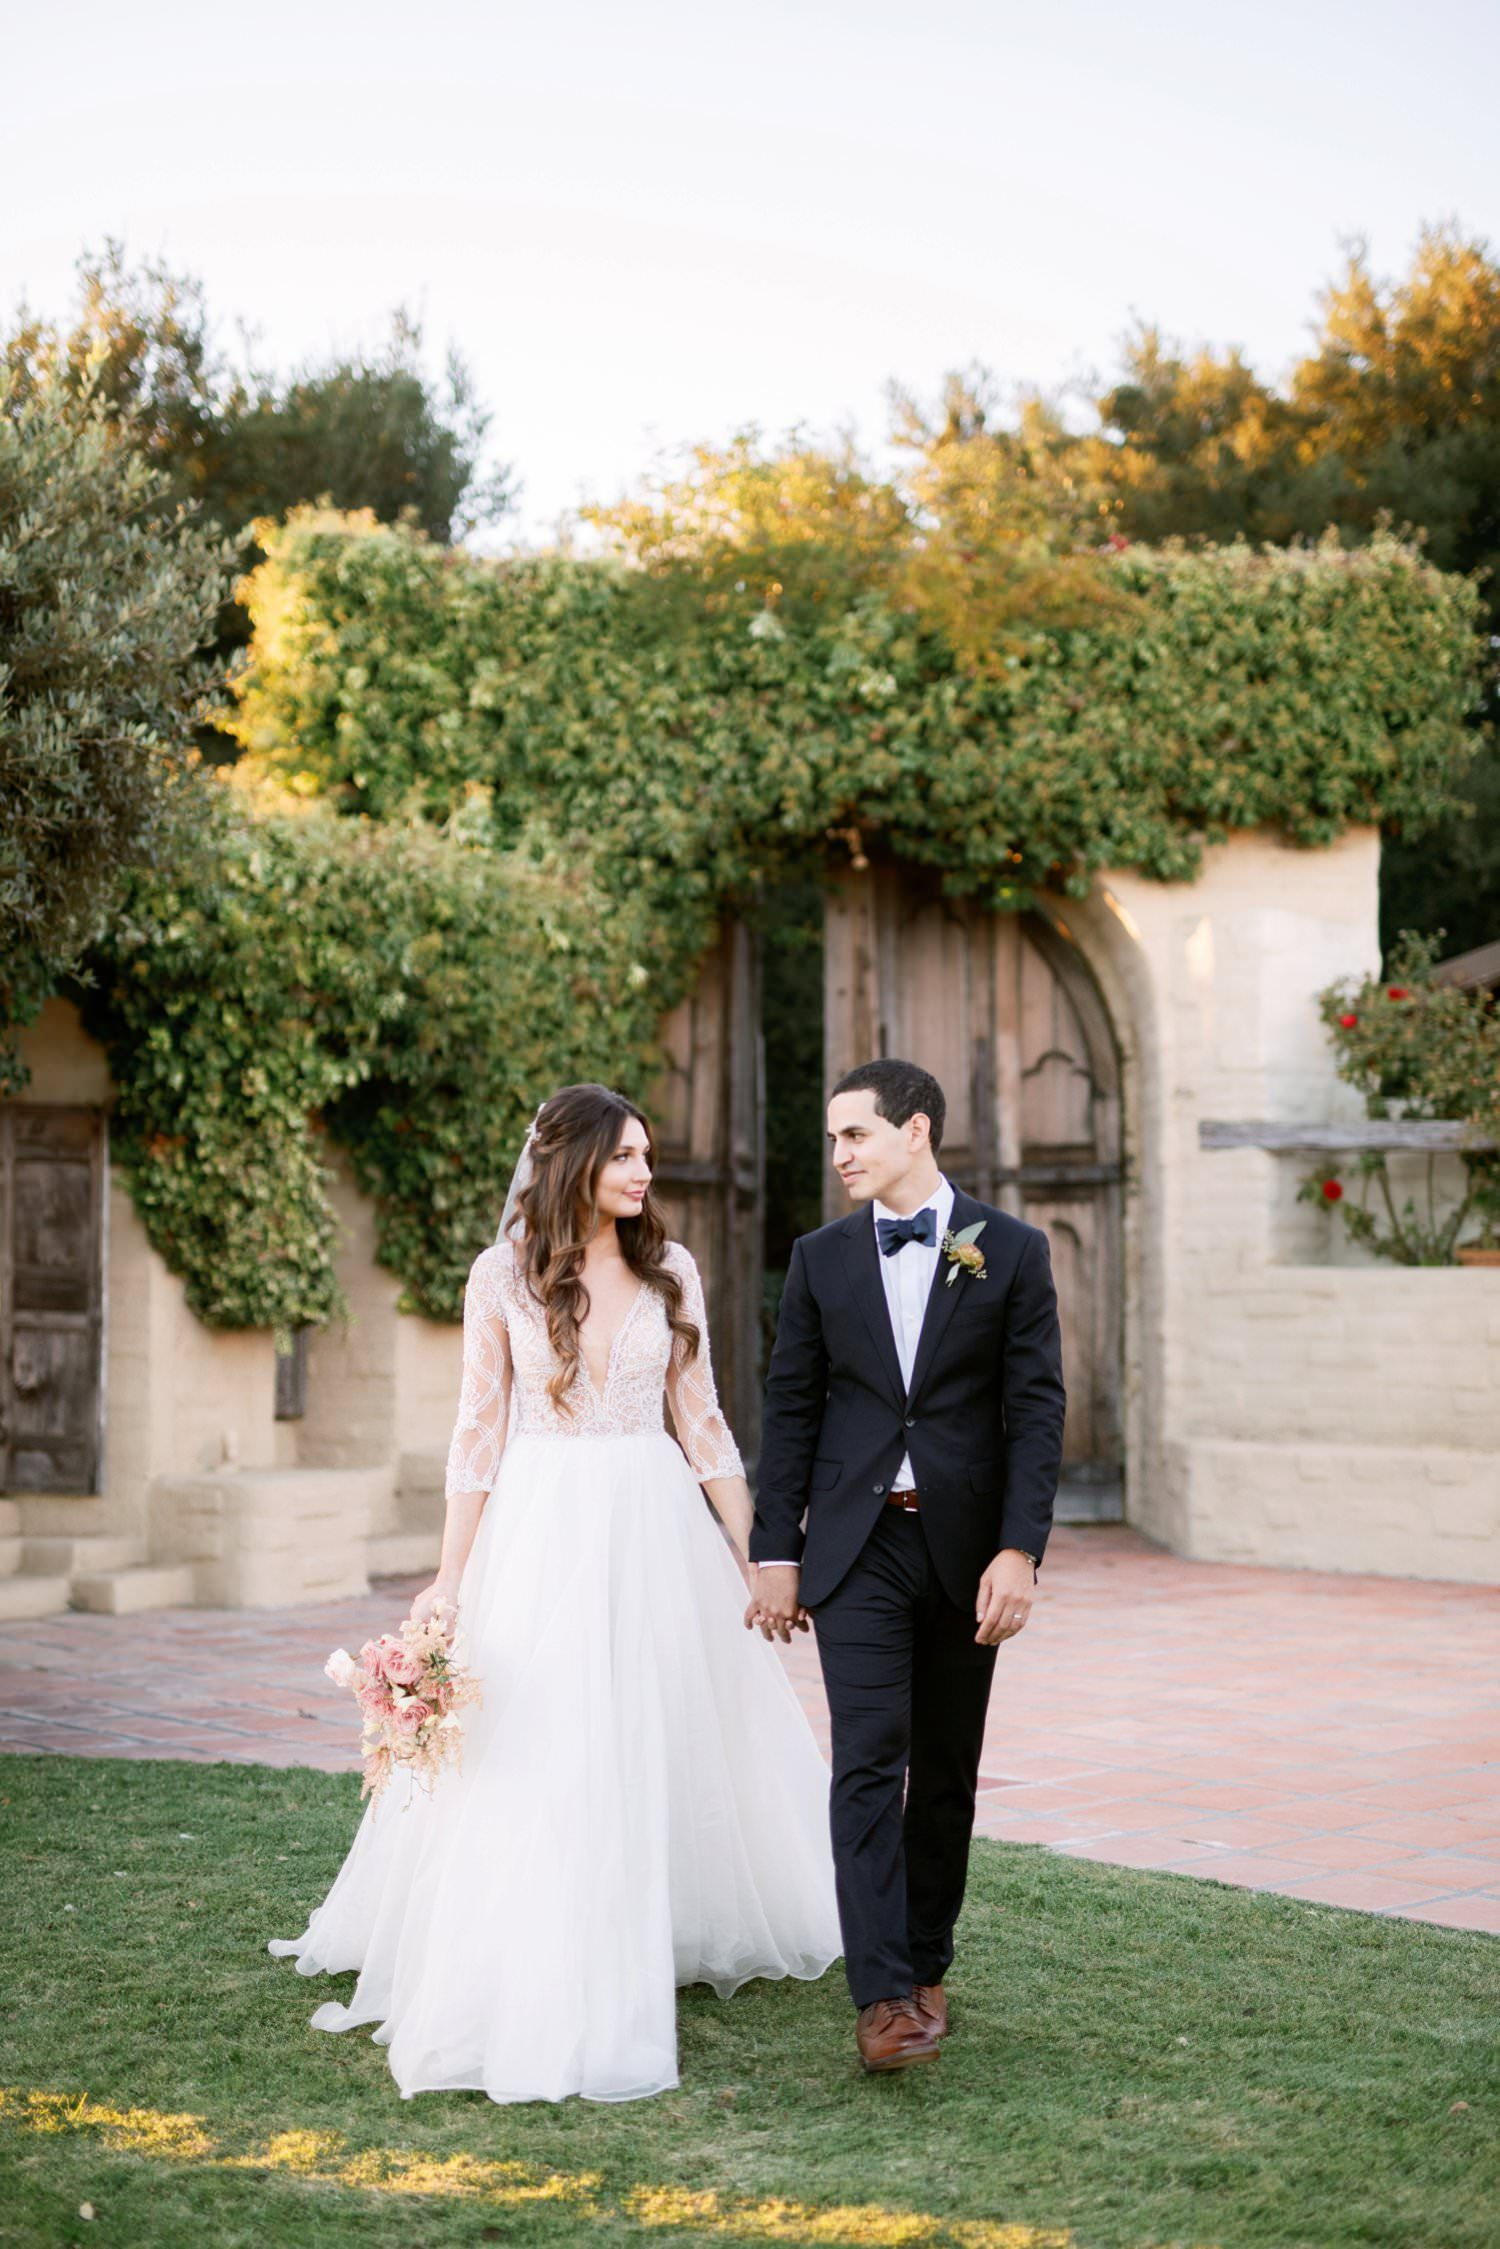 Santa Ynez wedding photographer in 2020 (With images